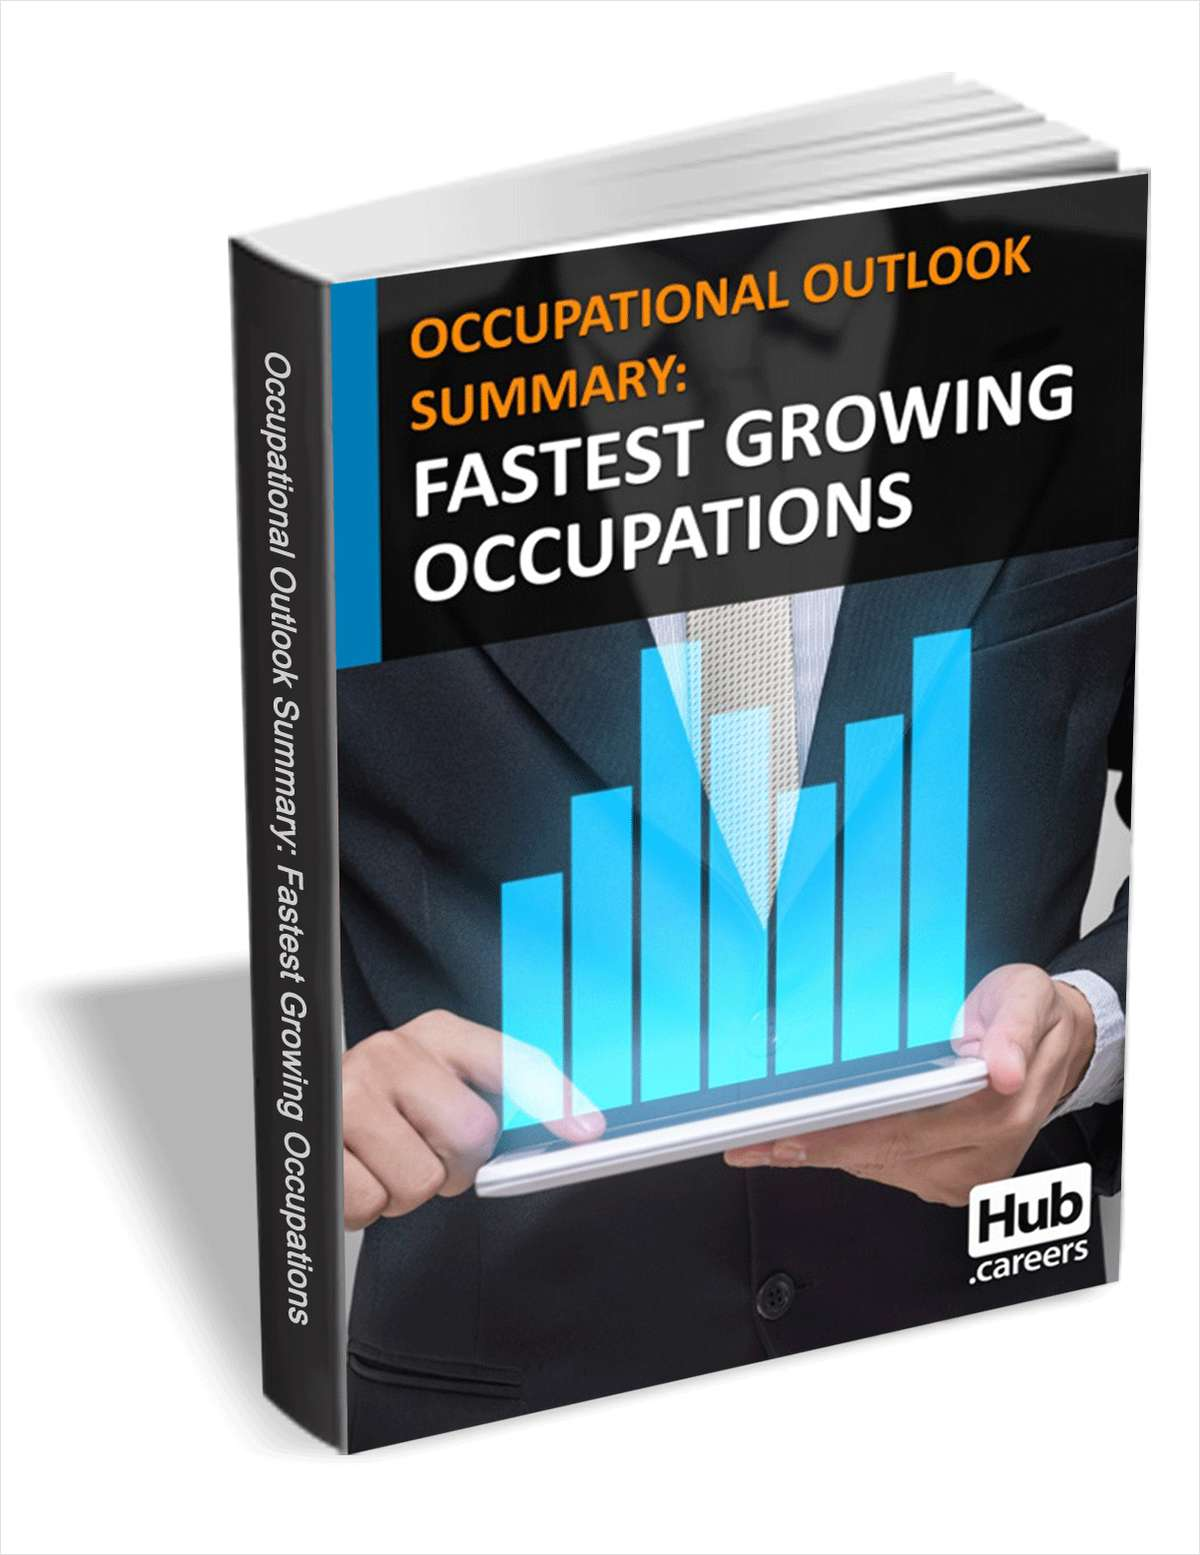 Fastest Growing Occupations - Occupational Outlook Summary